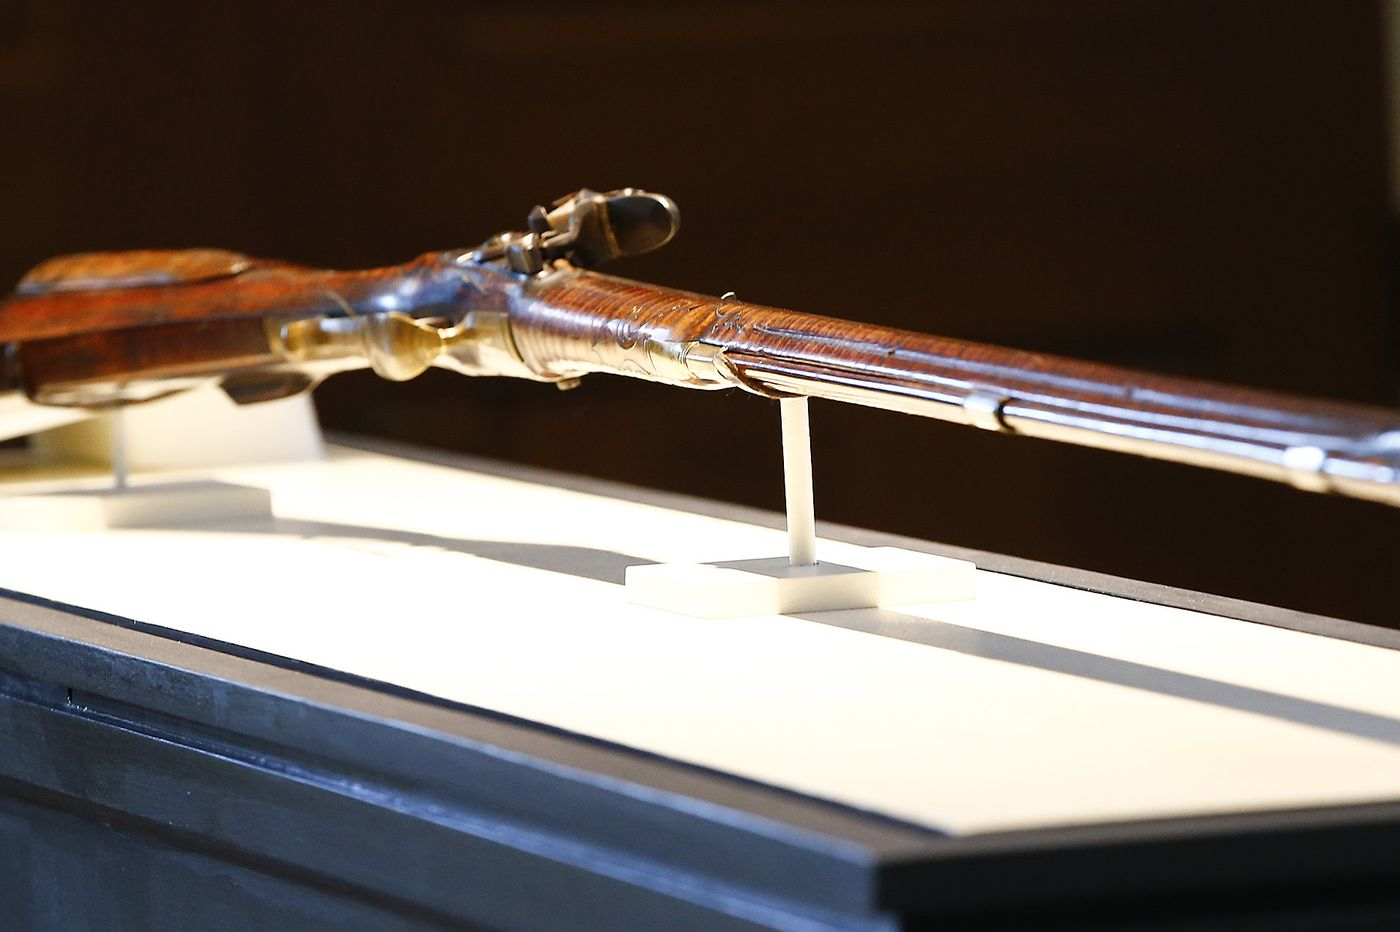 Rare Revolutionary-era rifle recovered nearly 50 years after brazen theft from Valley Forge